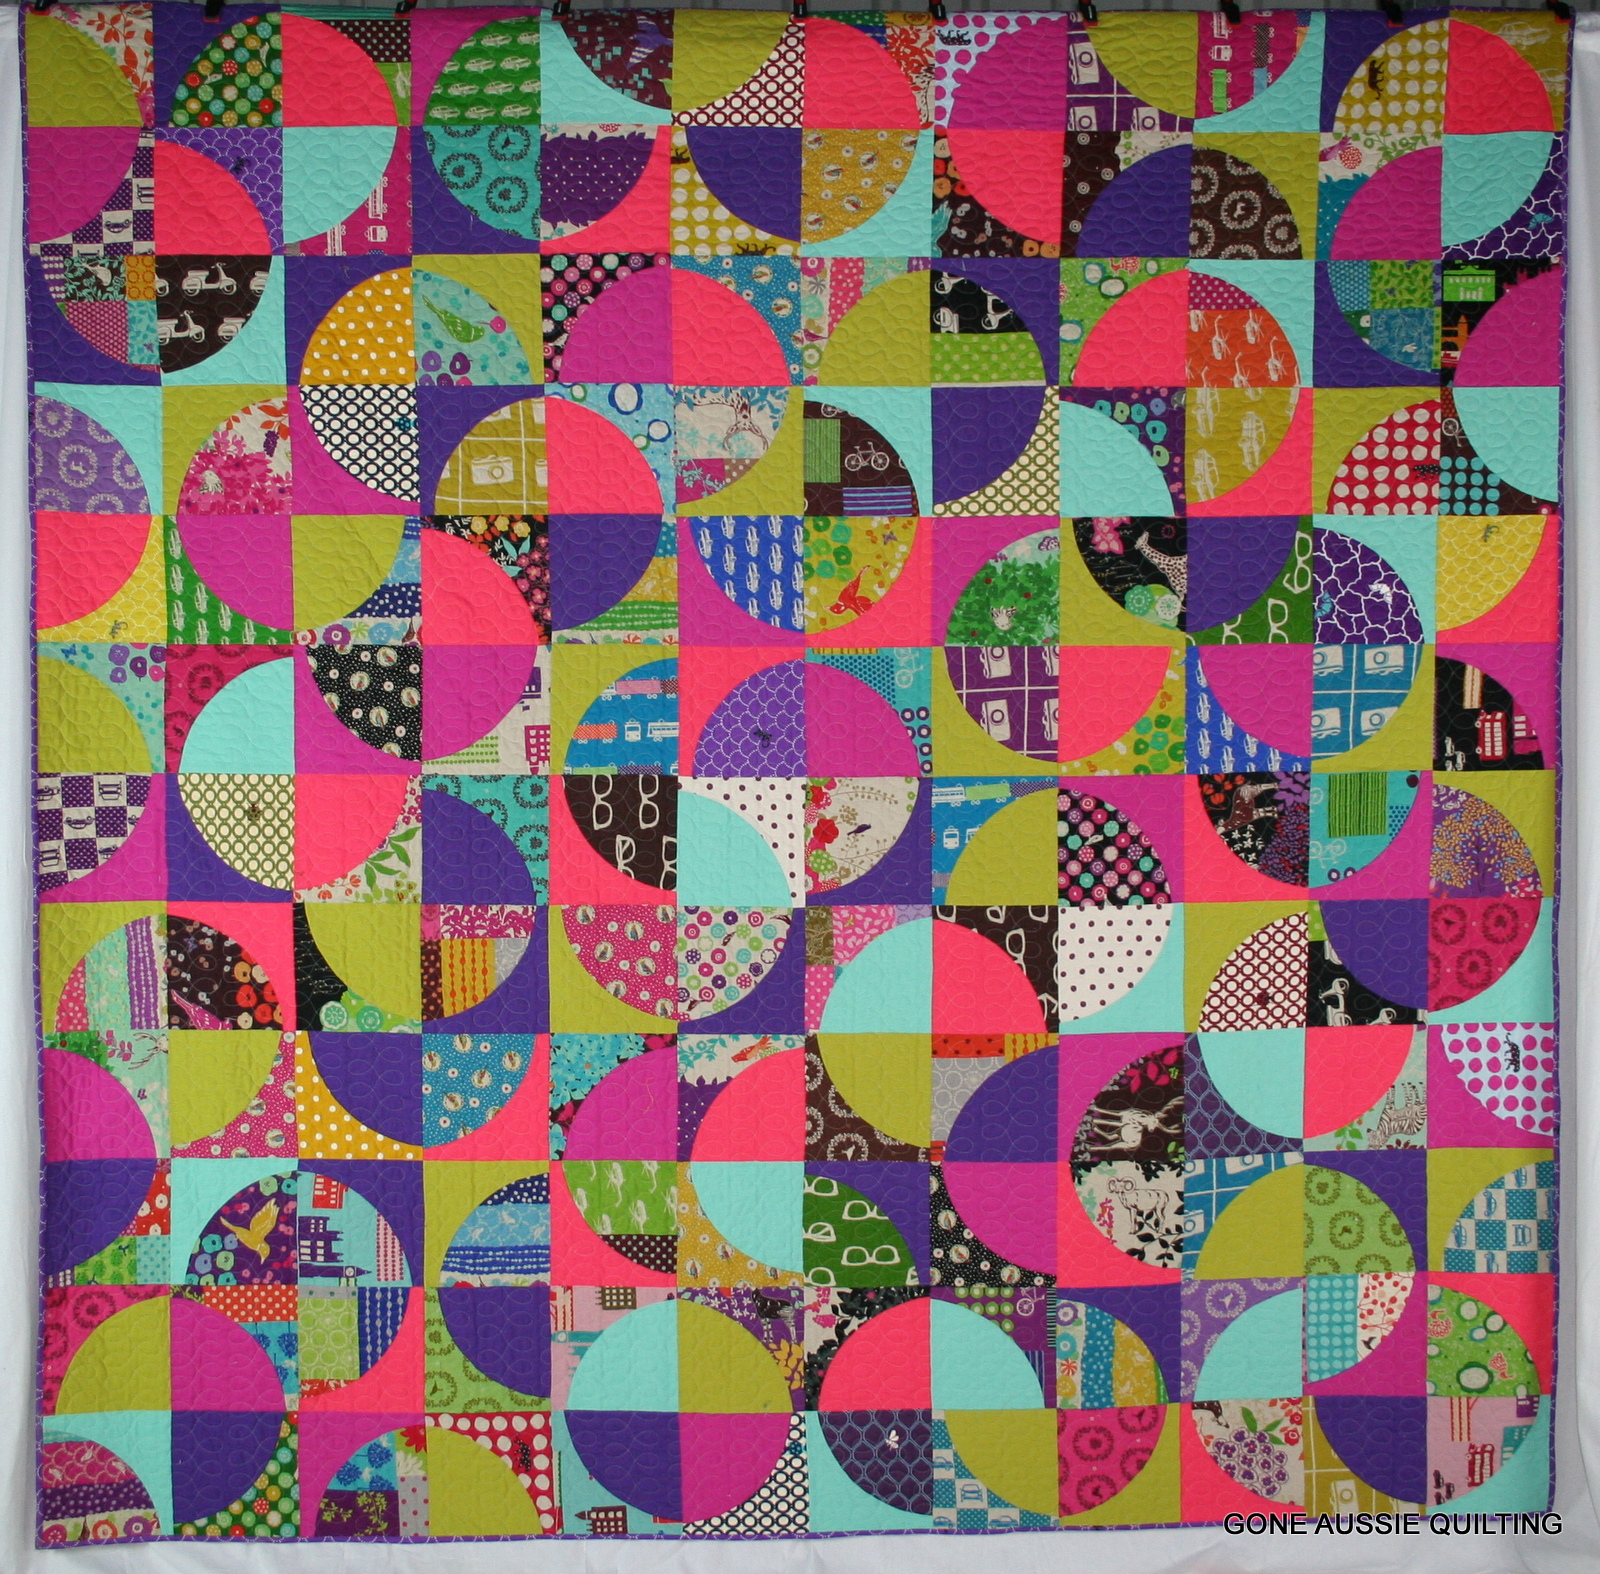 Gone Aussie Quilting: Drunkard's Path Echino Finish!